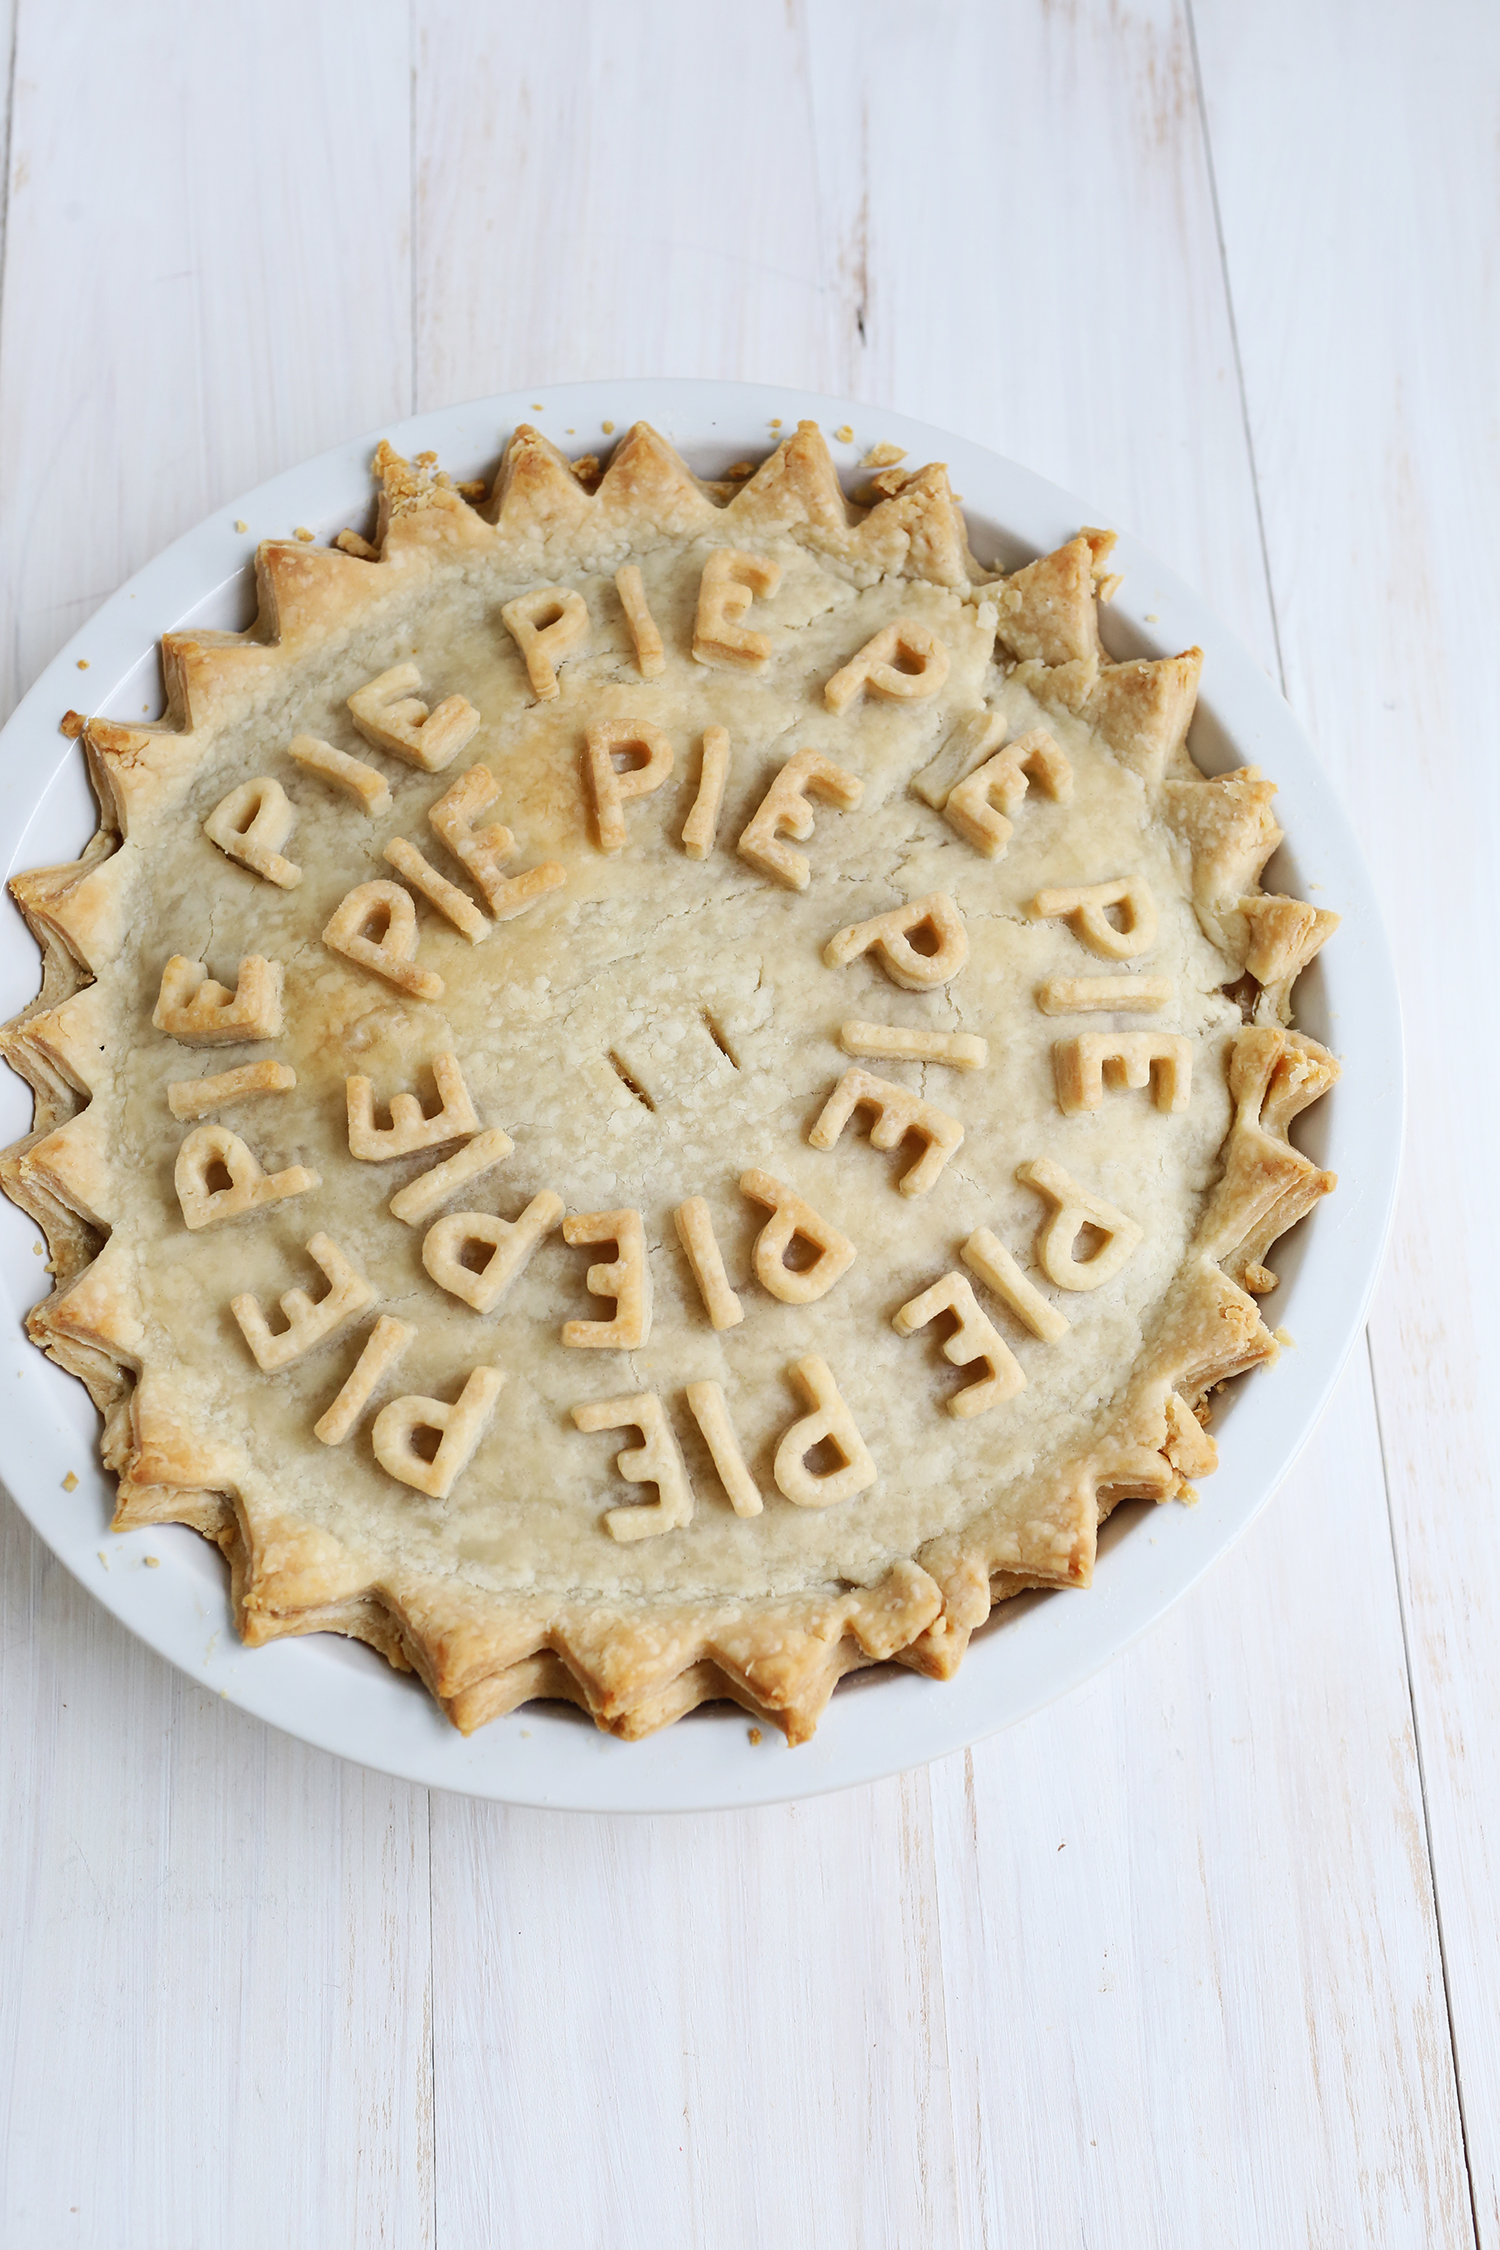 25 Decorative Pie Crust Ideas